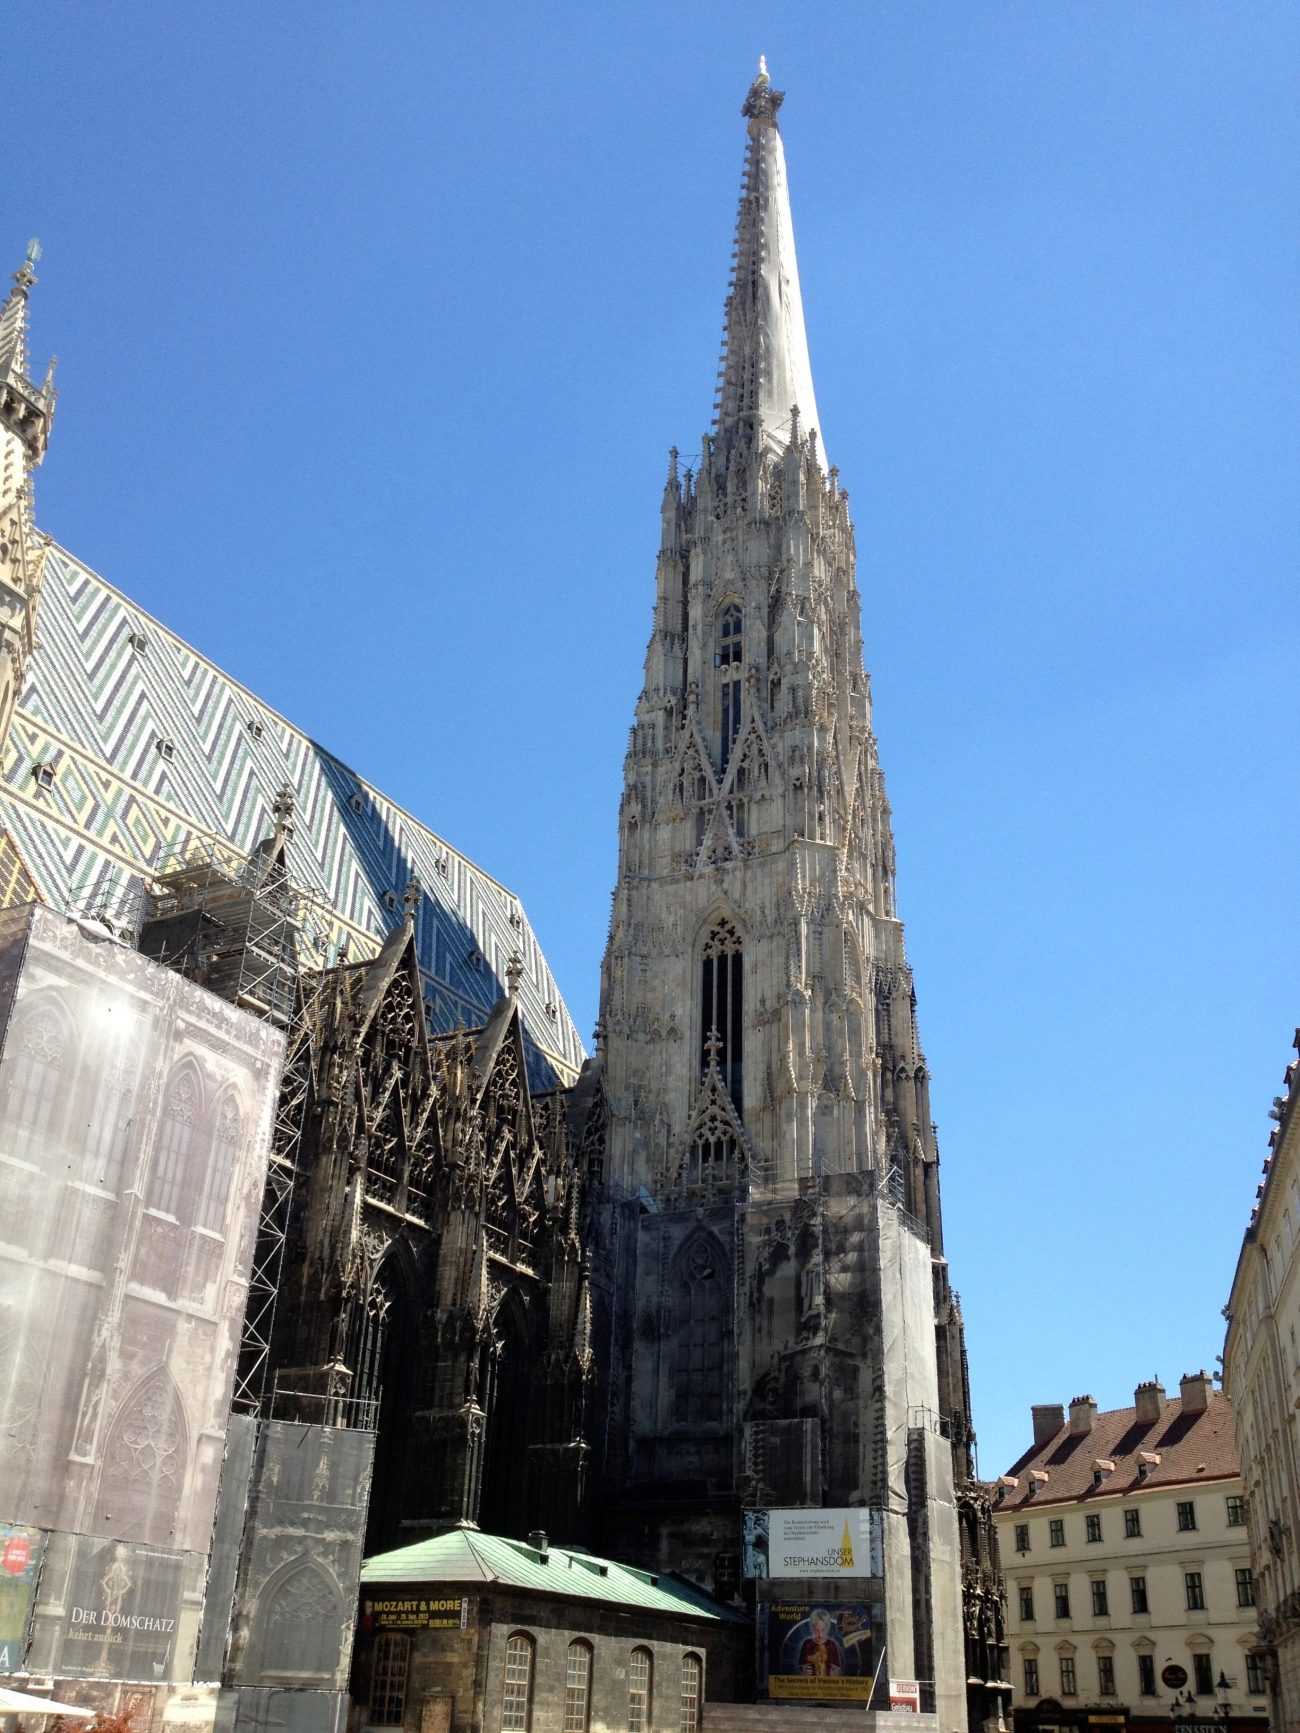 The big spire and its fancy roof.